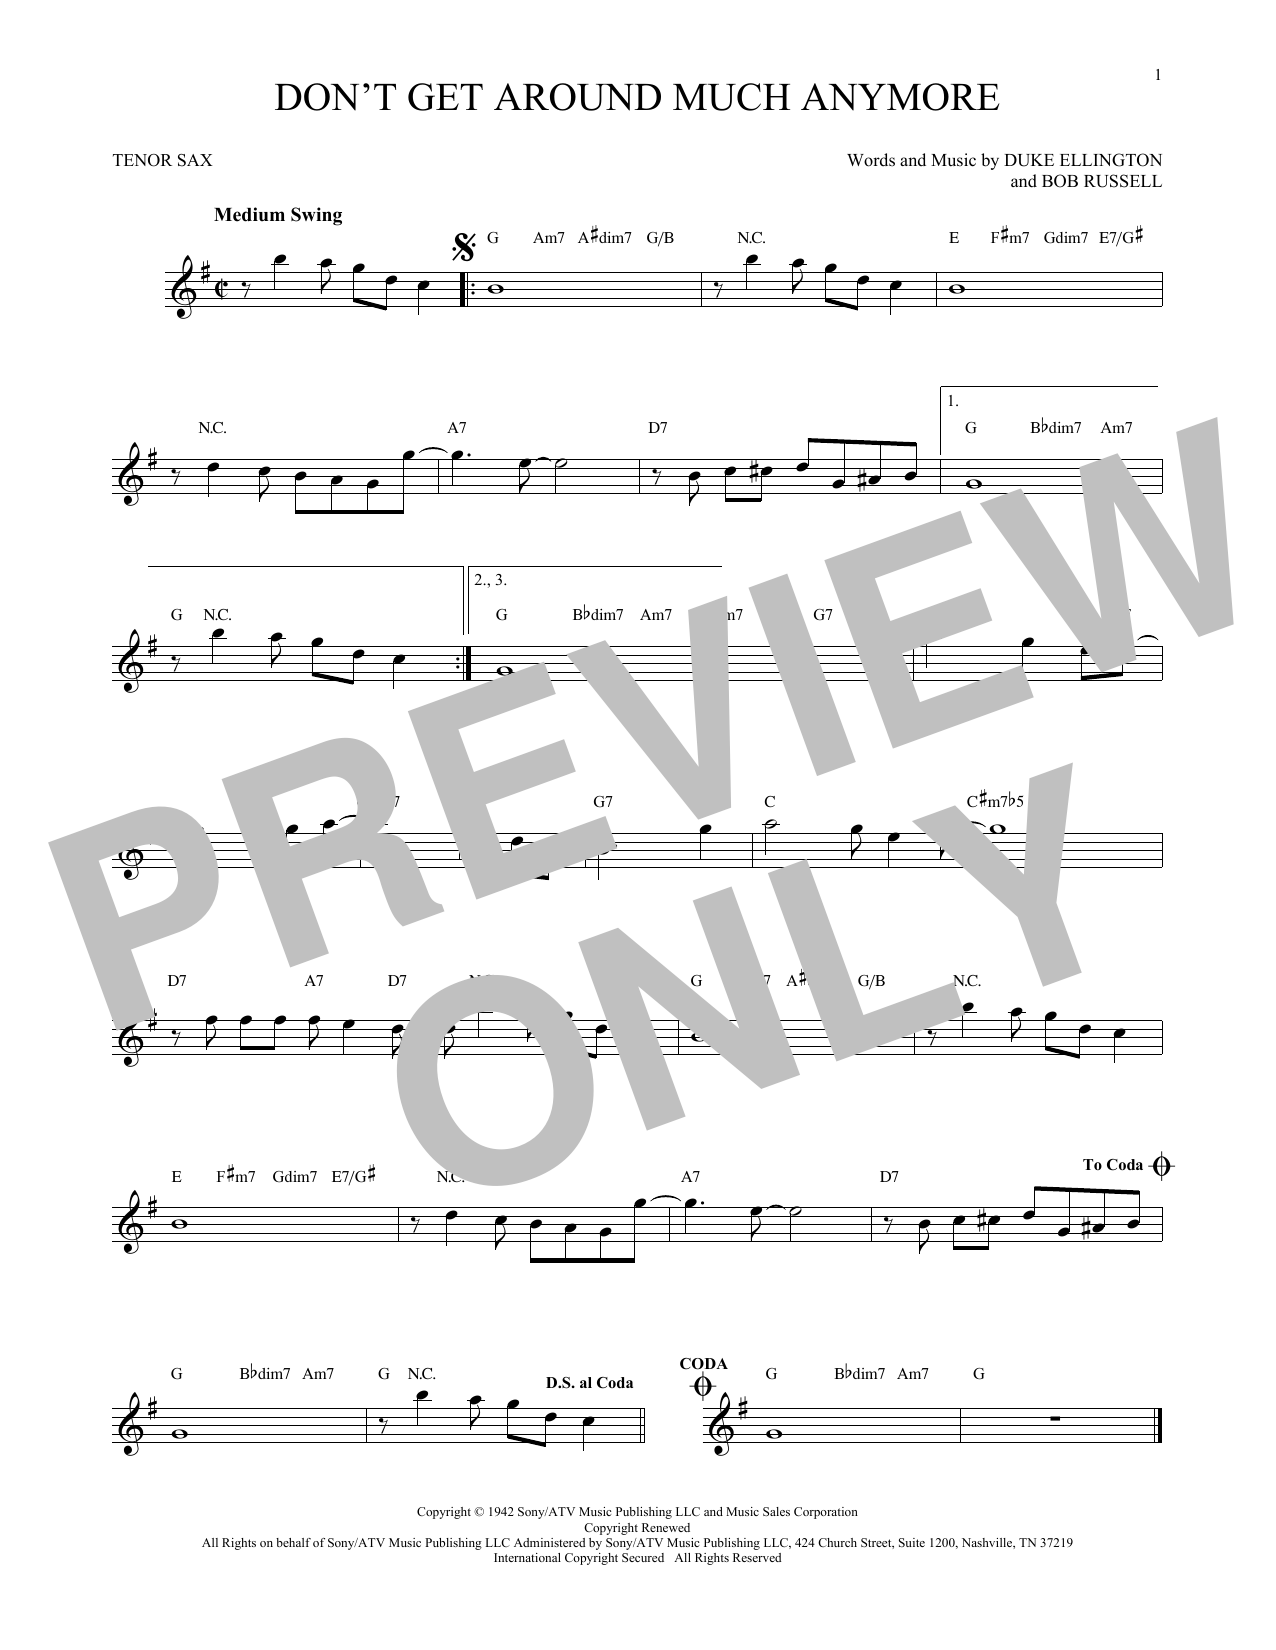 Sheet music digital files to print licensed standards digital dont get around much anymore hexwebz Images